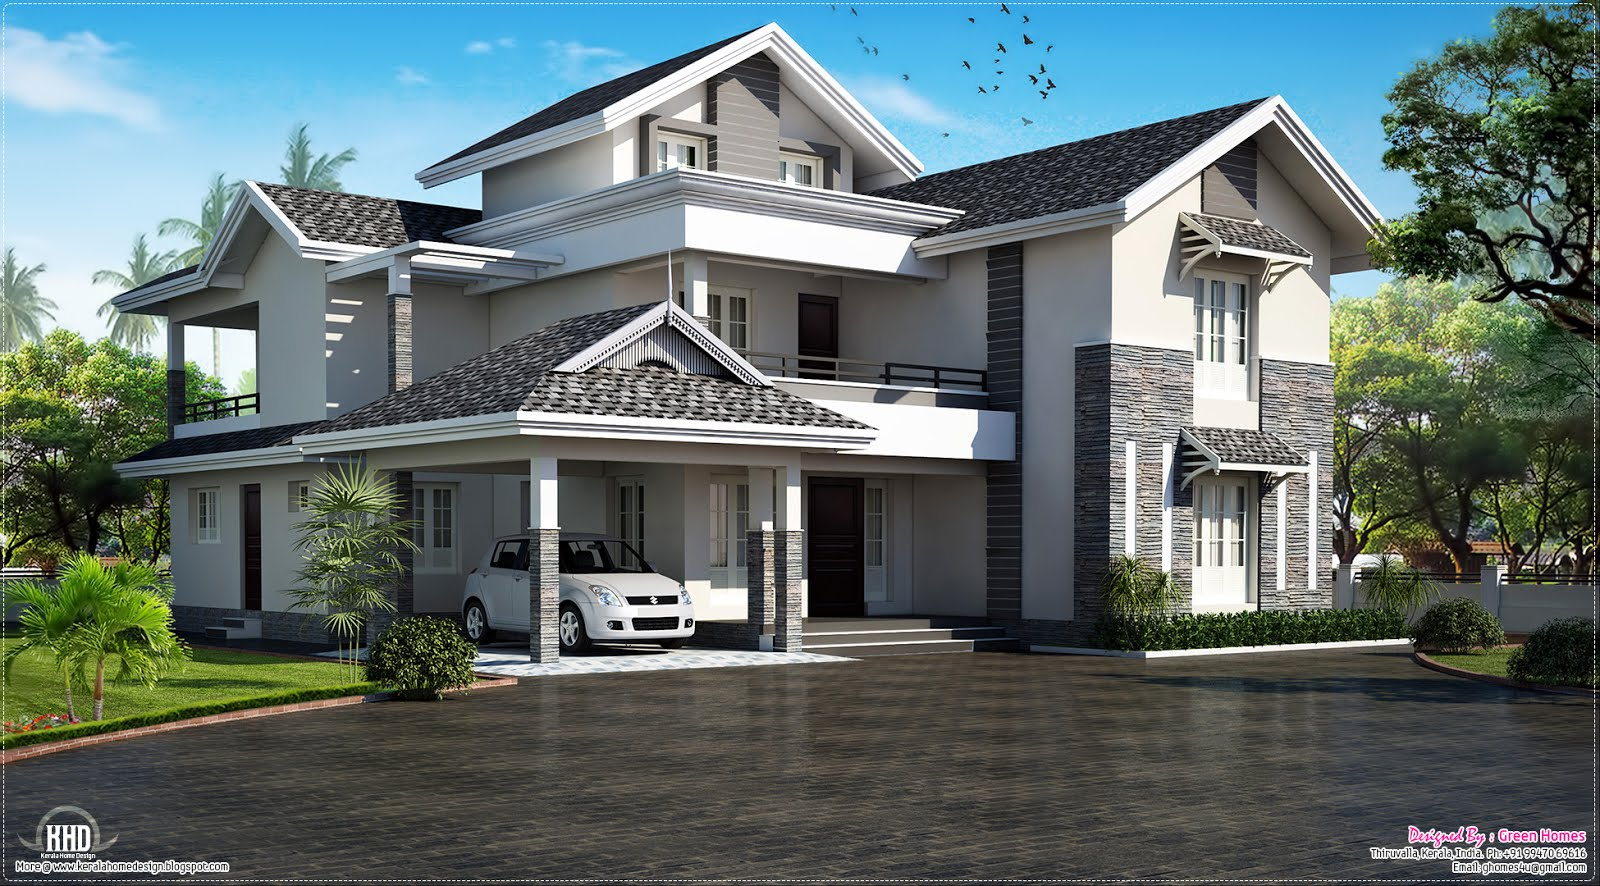 Modern sloping roof house villa design kerala home Home house plans